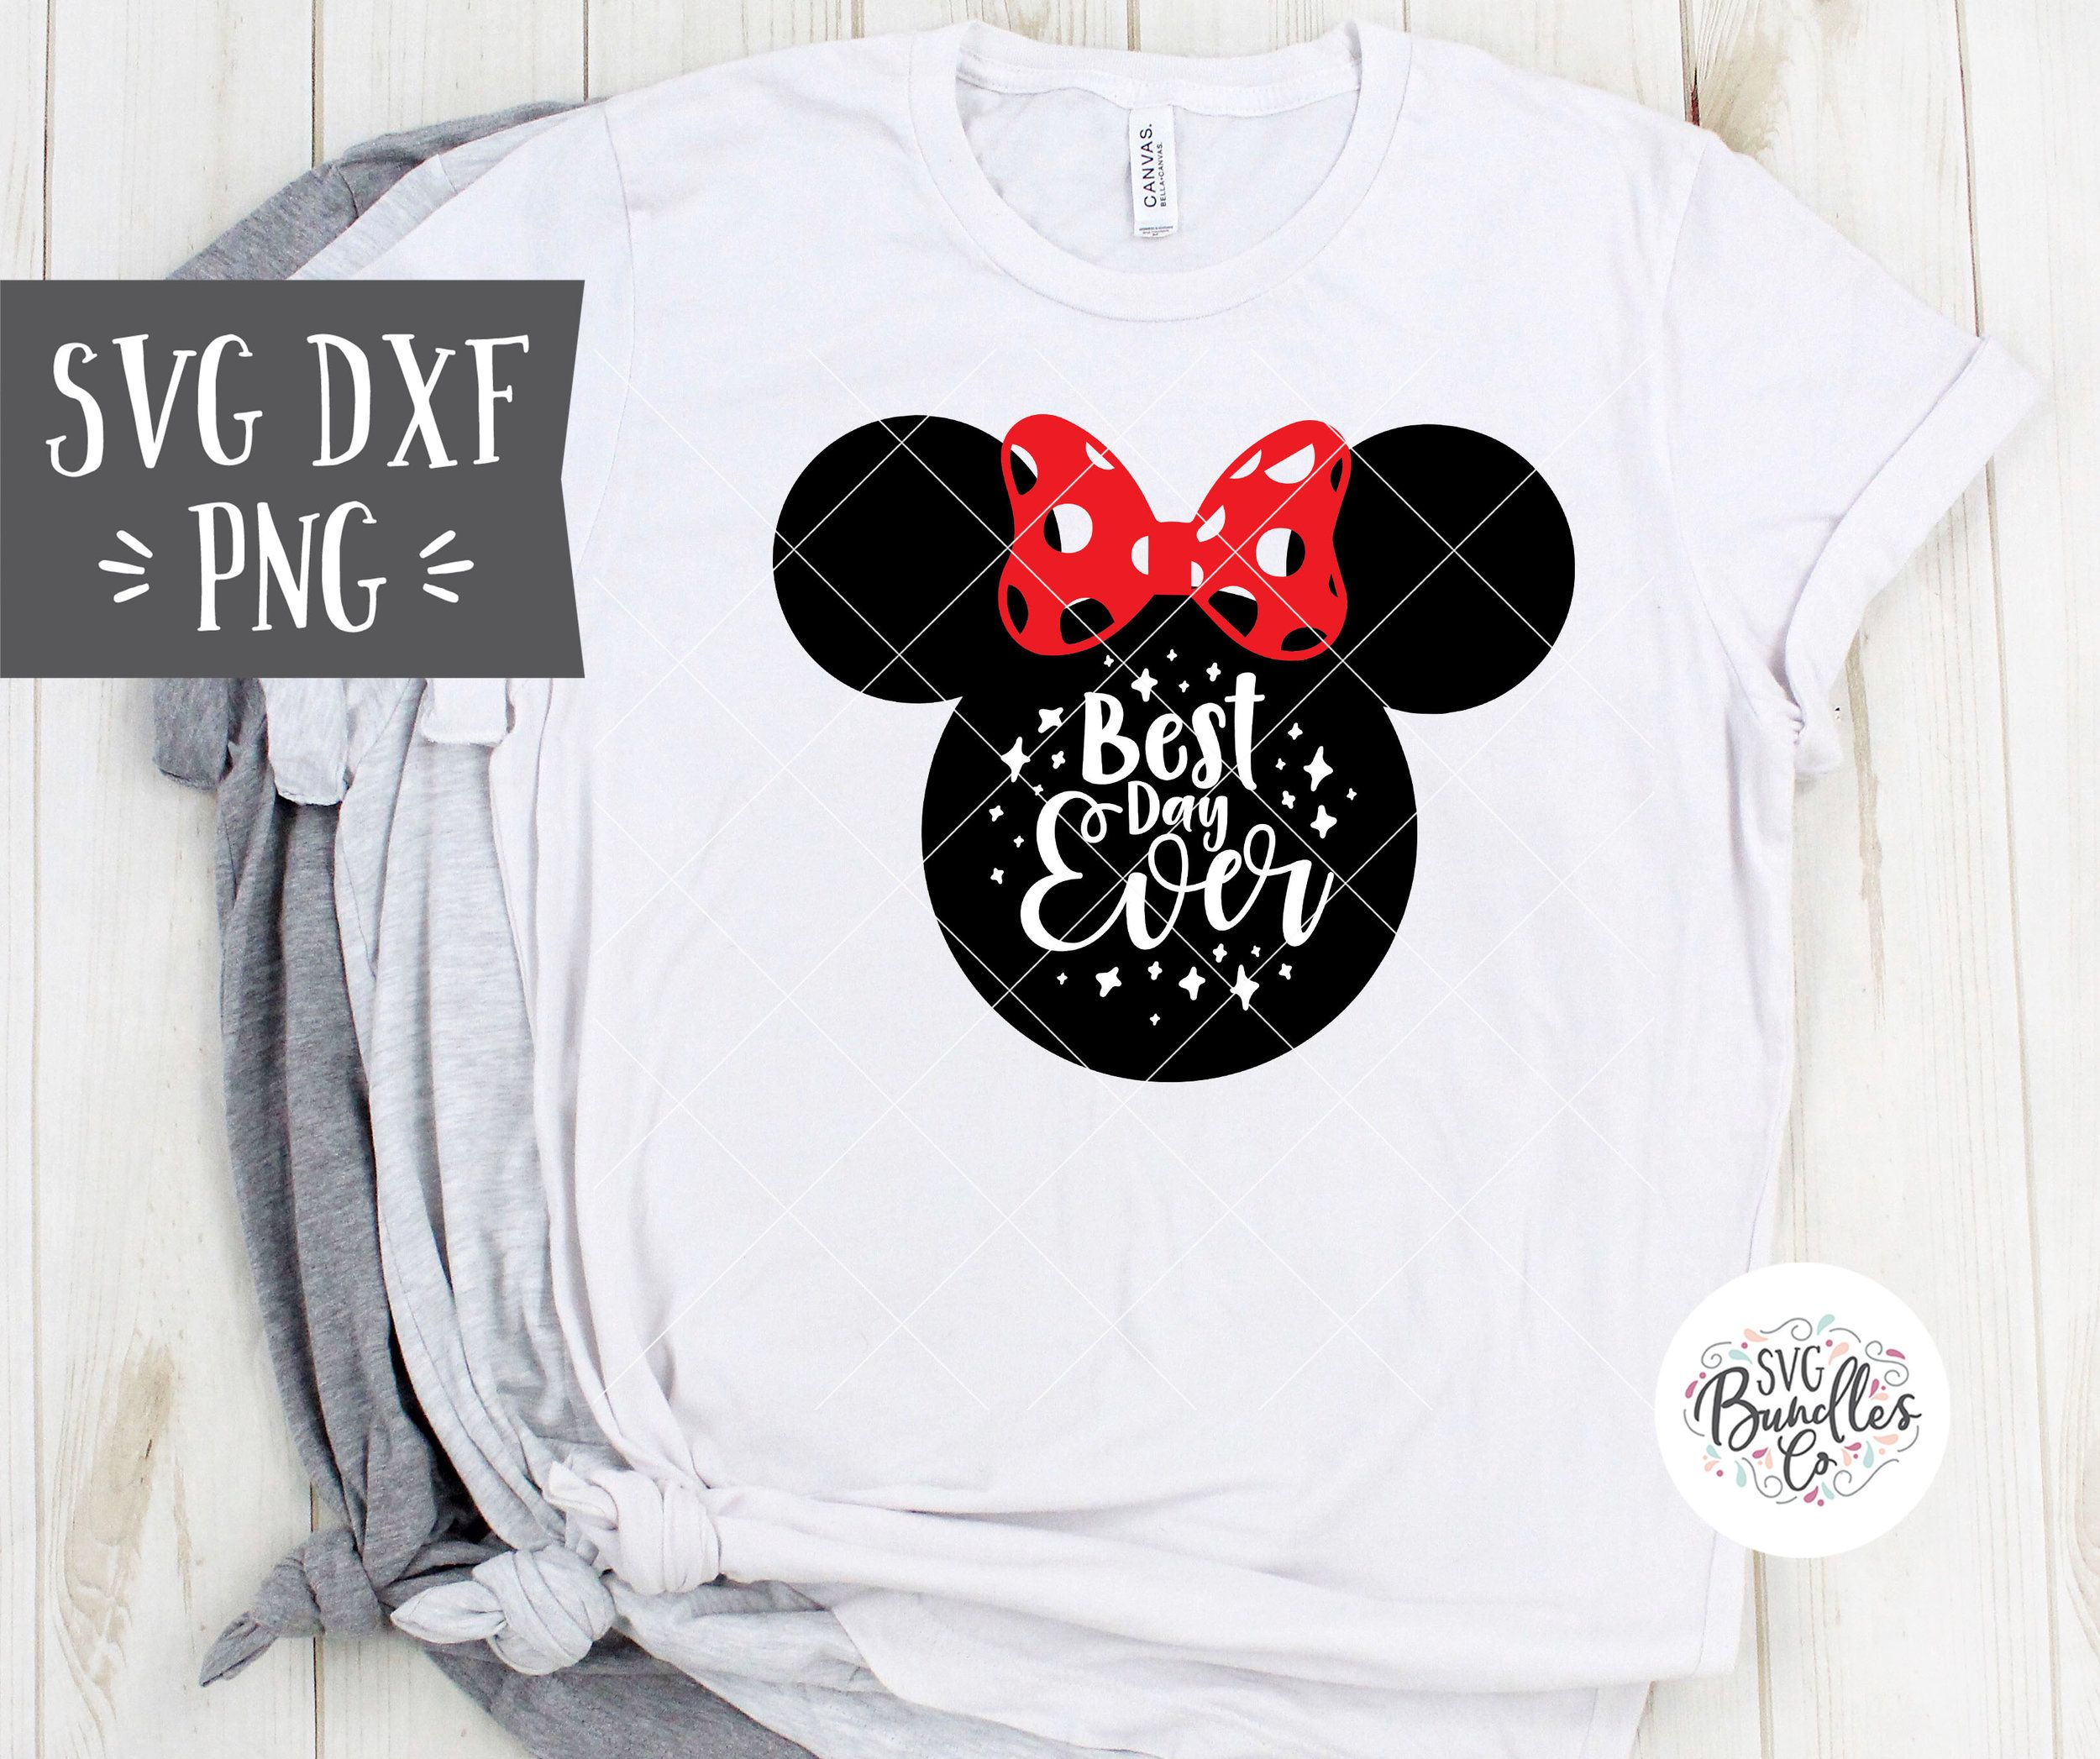 Squad Goals Mickey and Minnie Mouse svg/dxf/png file